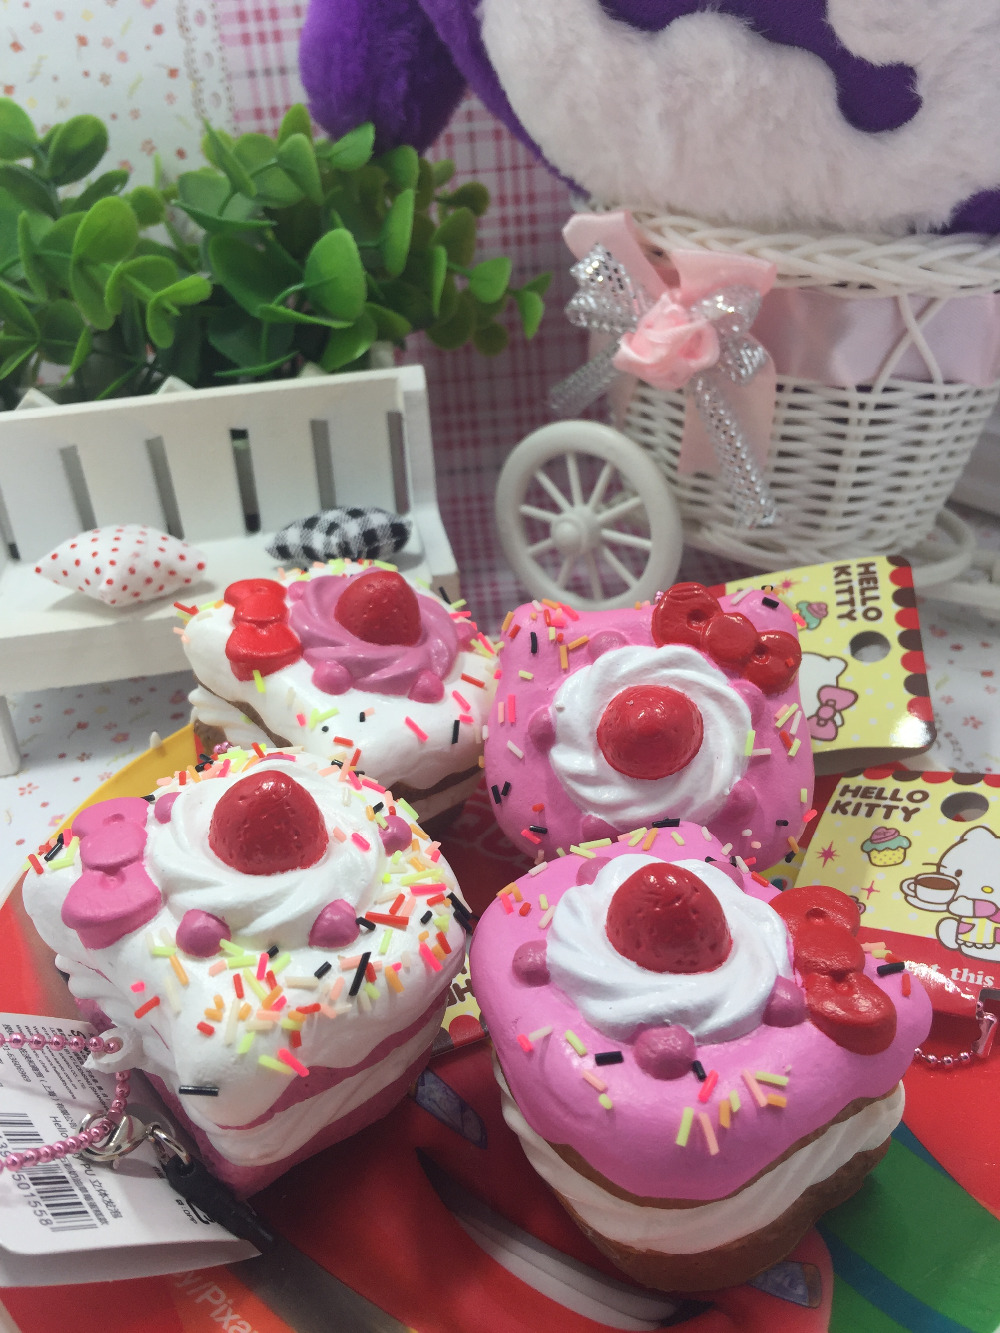 original package rare hello kitty squishy sweet cake squishy phone charm pink cell phohe Strap wholesales Squishies 8pcs/lot(China (Mainland))